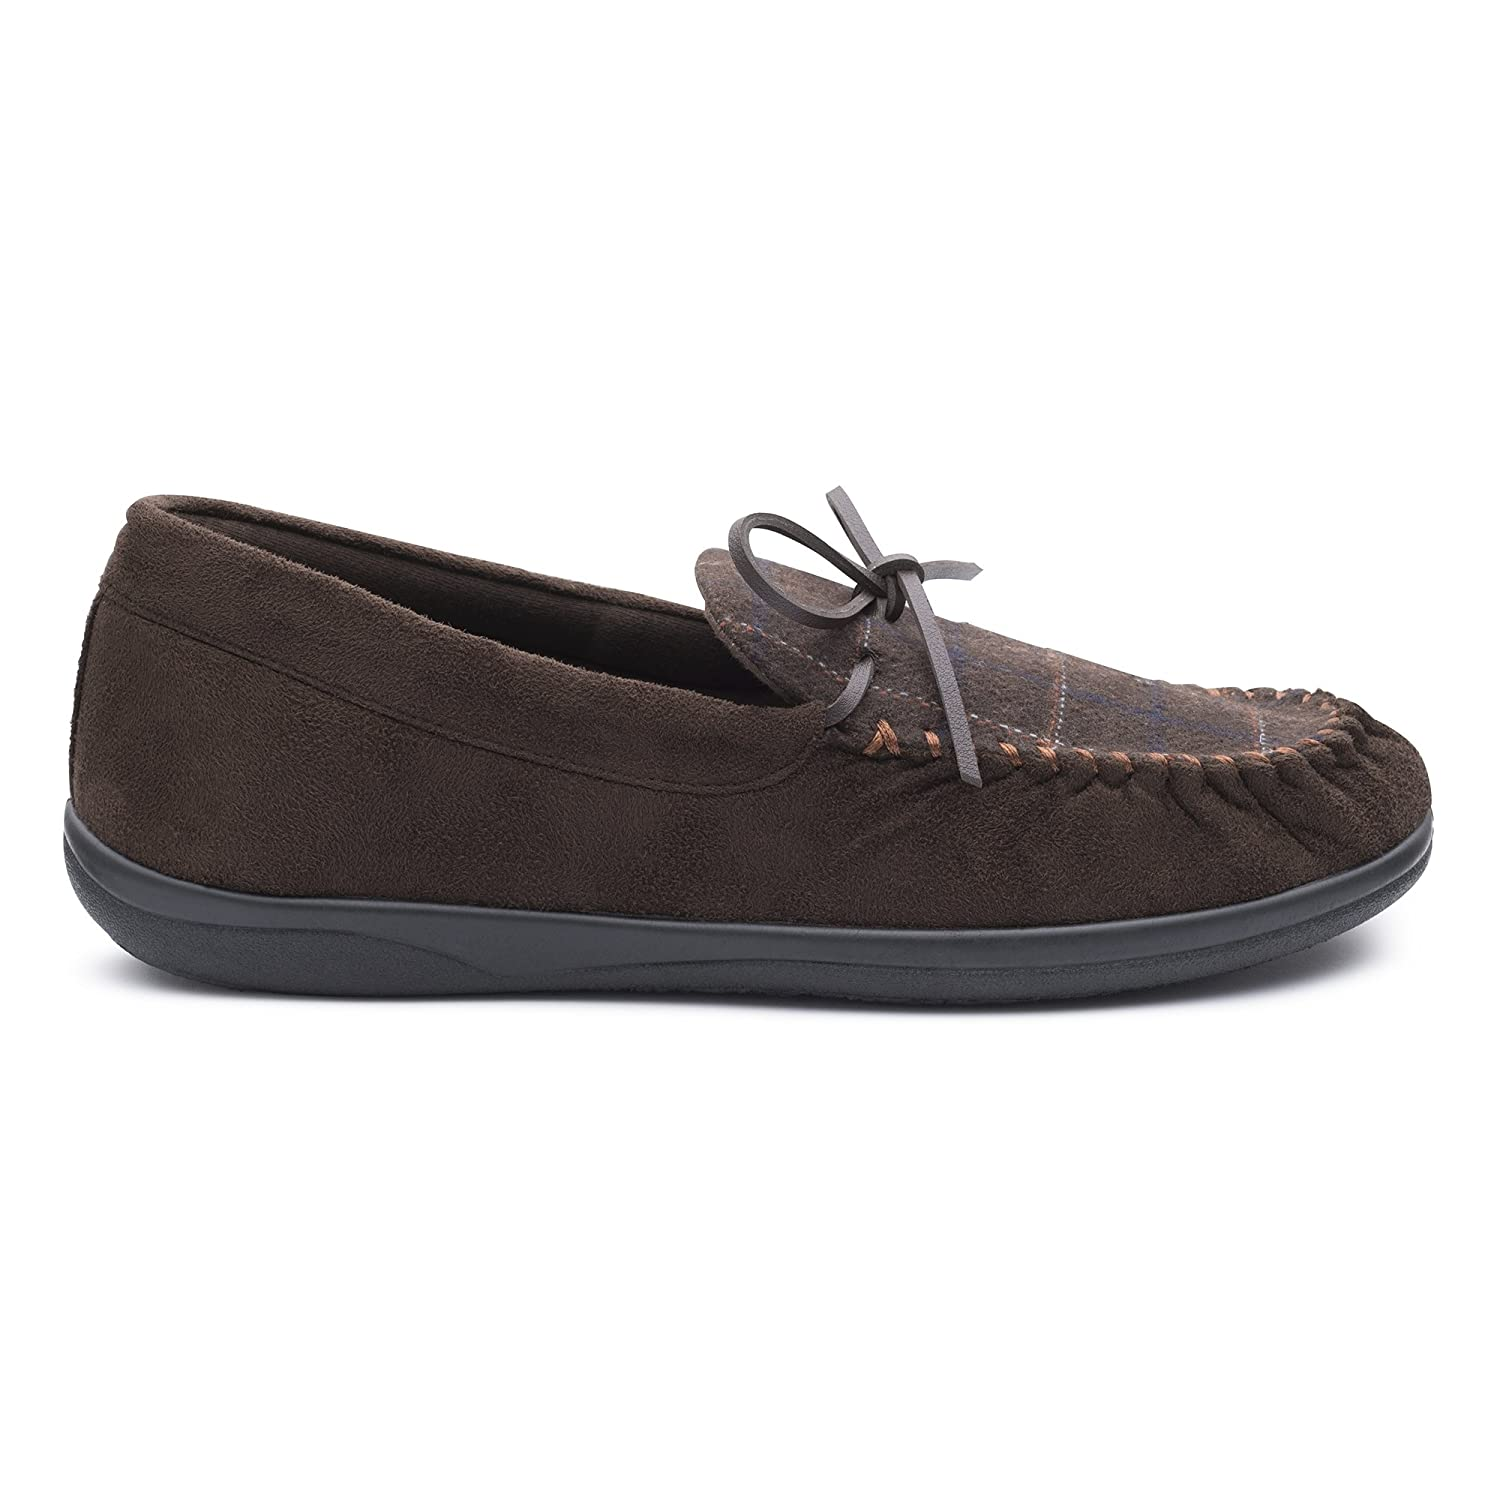 f75b872b9cd8 Padders Lounge Mens Textile Wide (G Fit) Slippers Brown UK 9  Amazon.co.uk   Shoes   Bags